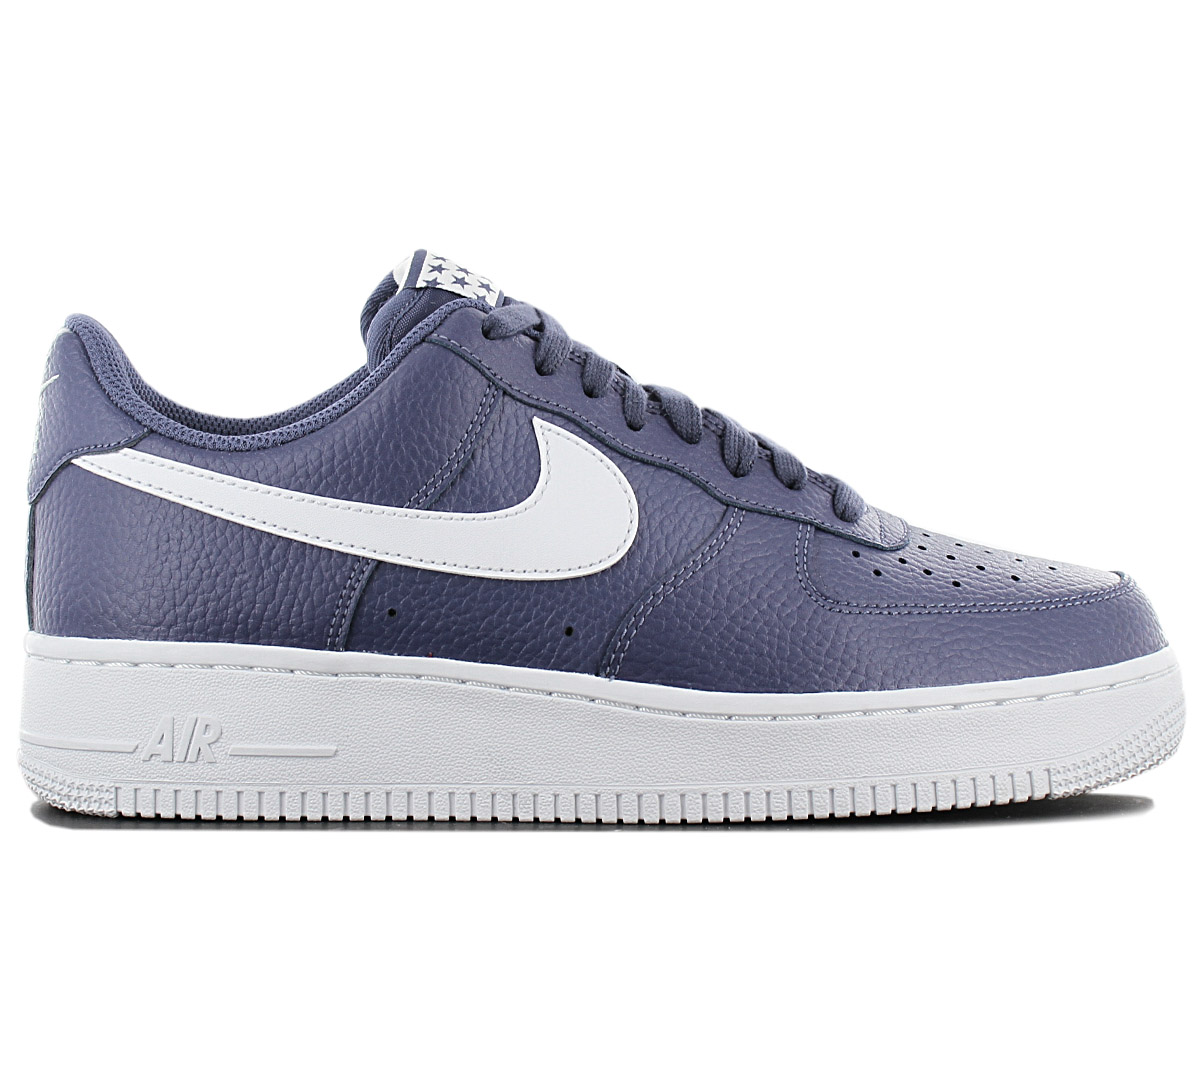 Air Force 1 Low '07 'Blue Recall